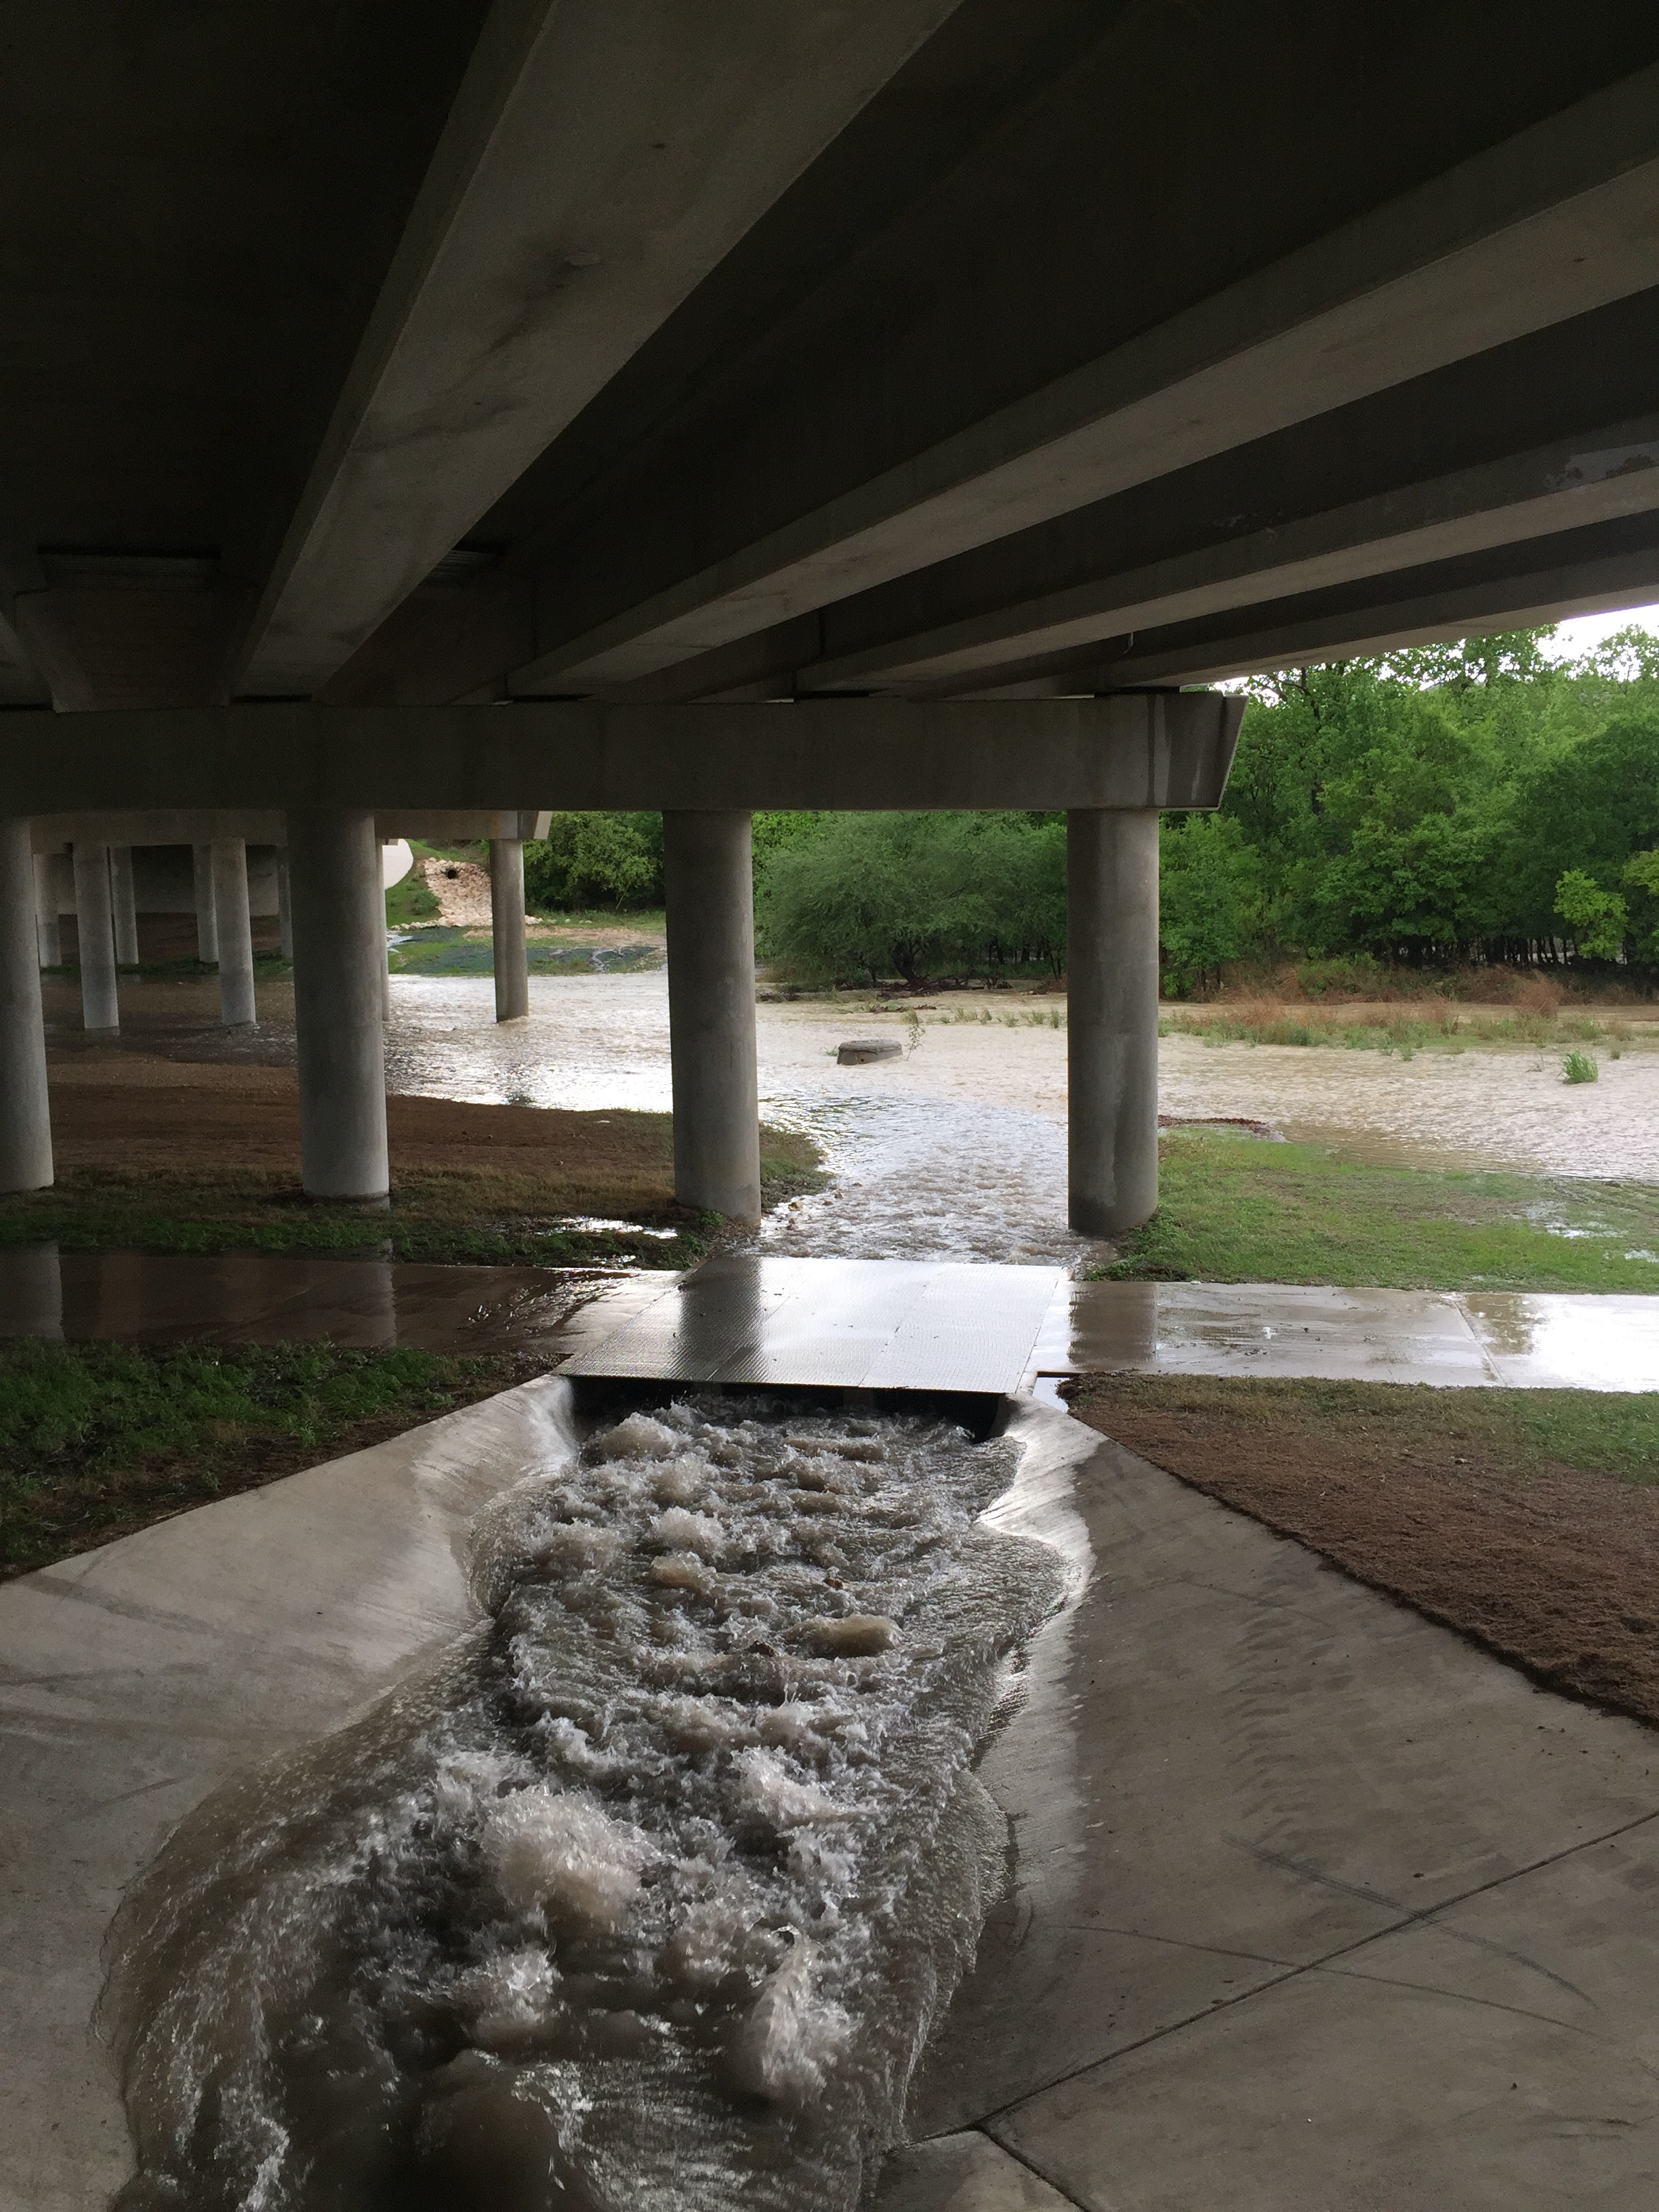 Water flowing under overpass